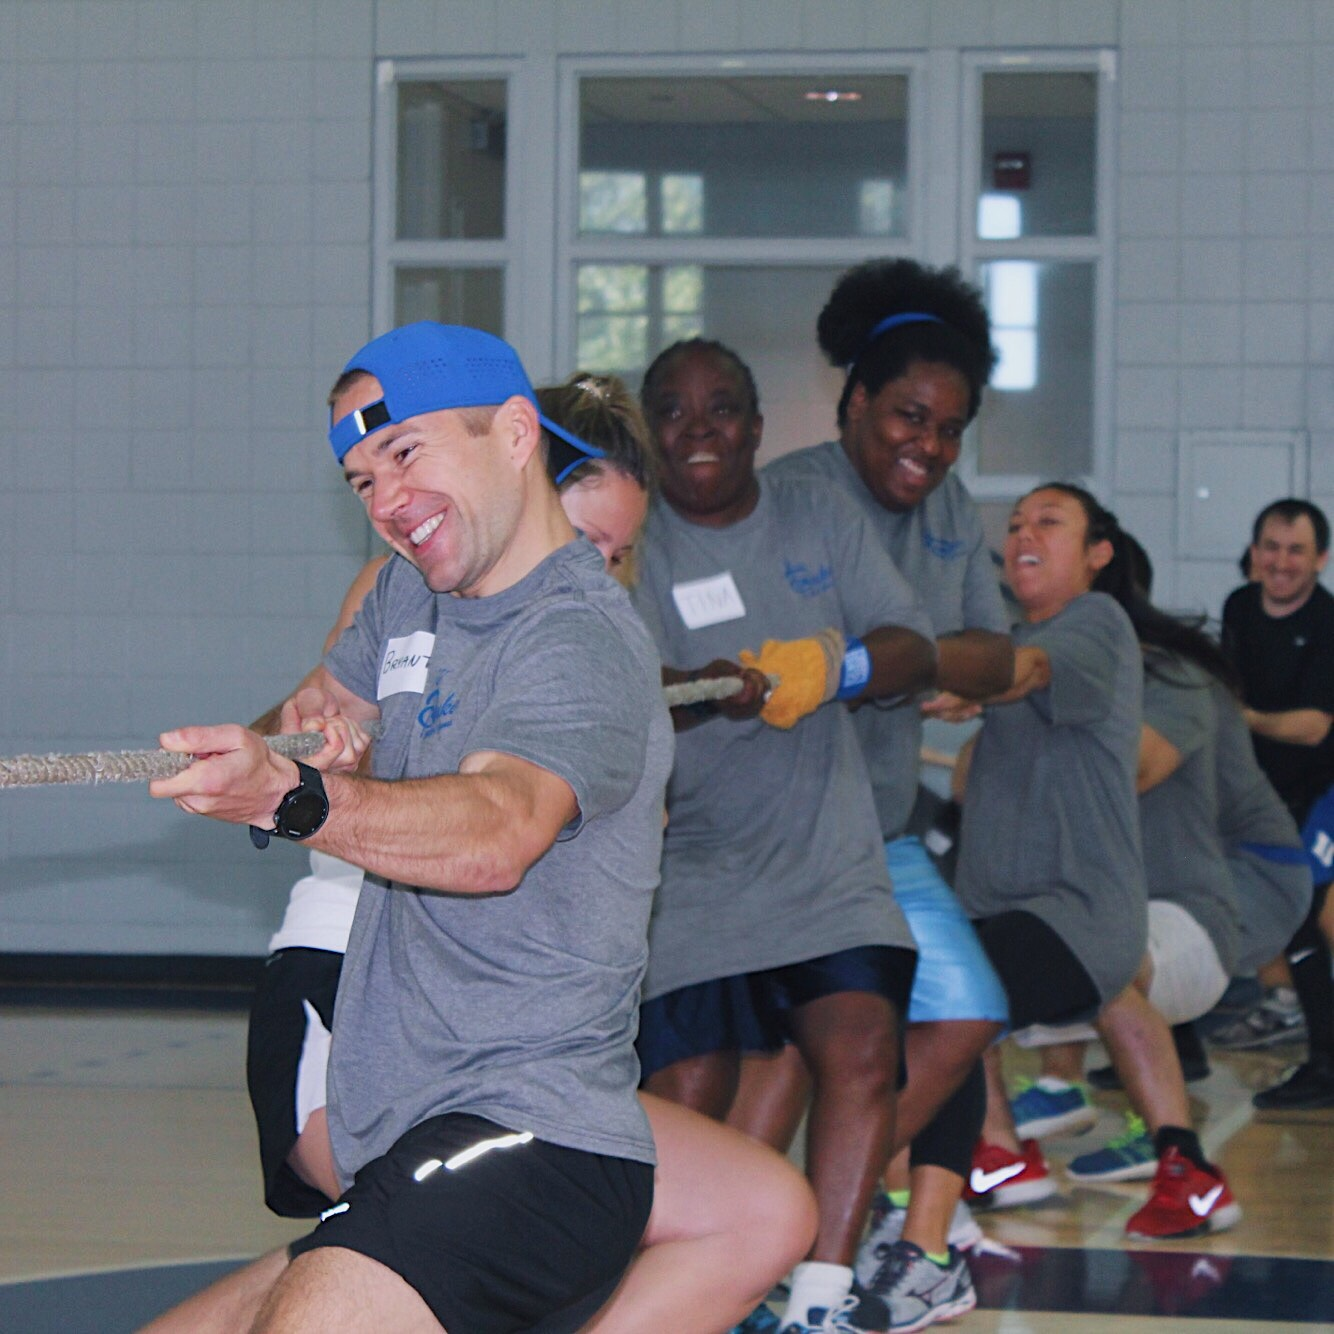 The Fuqua School of Business MBA Games benefits Special Olympics North Carolina